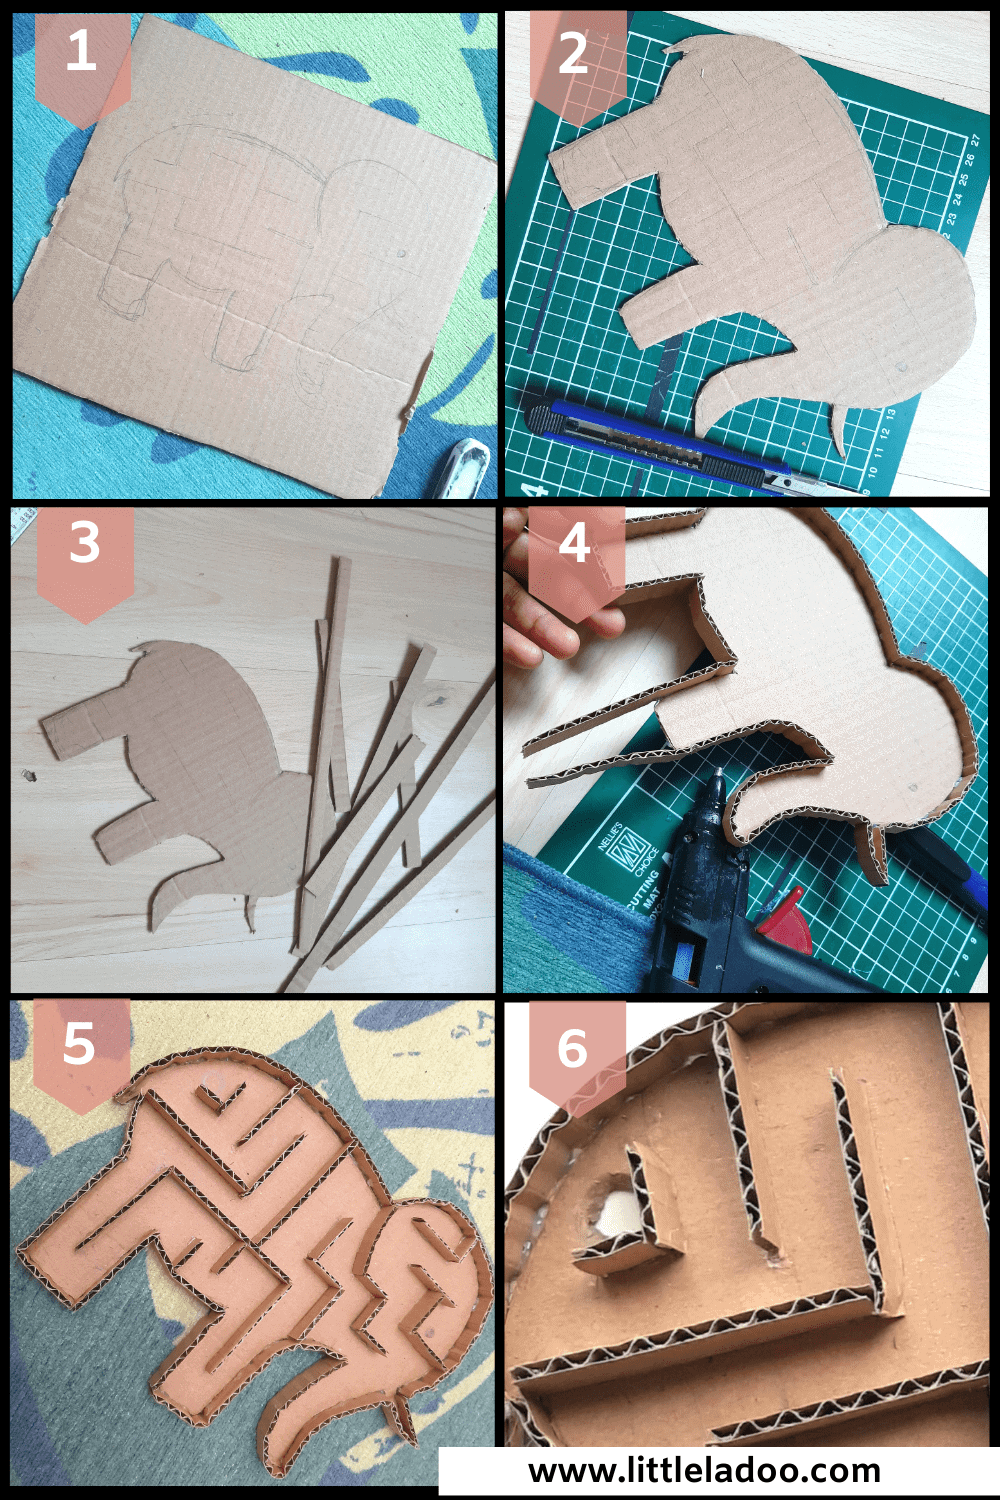 tutorial diy cardboard maze step by step pictures